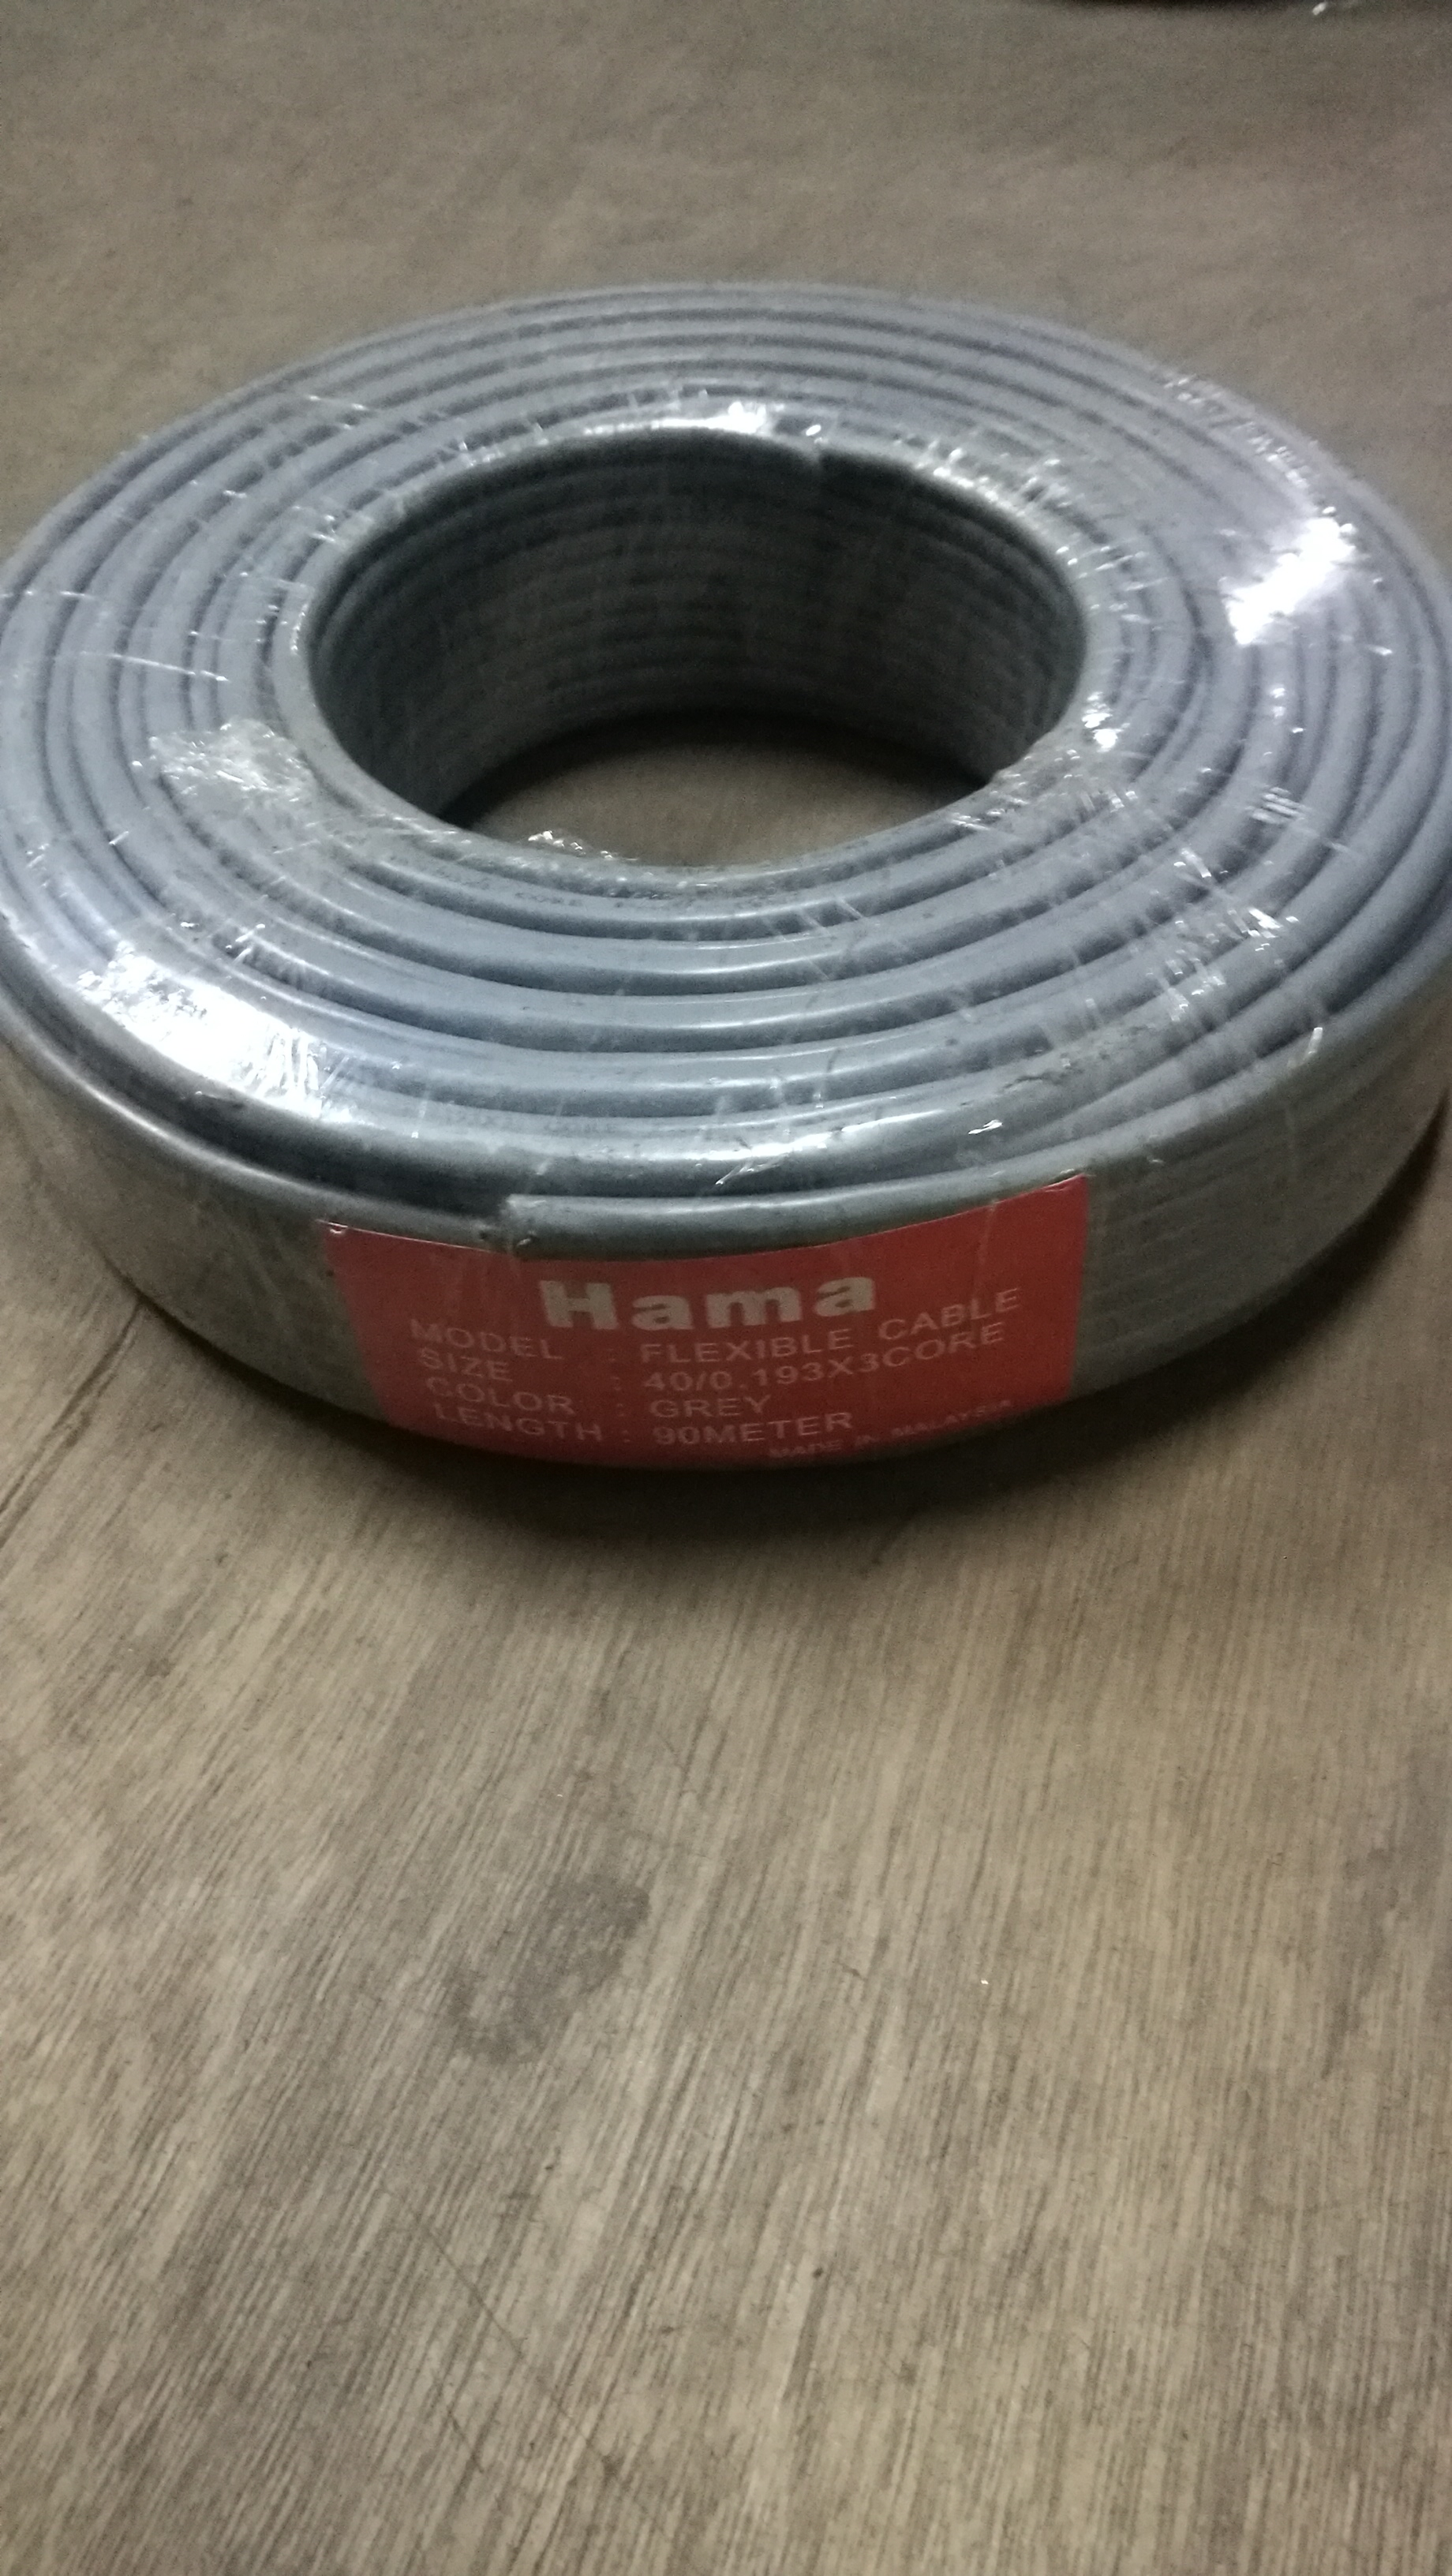 Hama flexible cable (23/0.16, 40/0.16, 40/0.193, 70/0.193, 110/0.193, 160/0.193 3core and 4core)